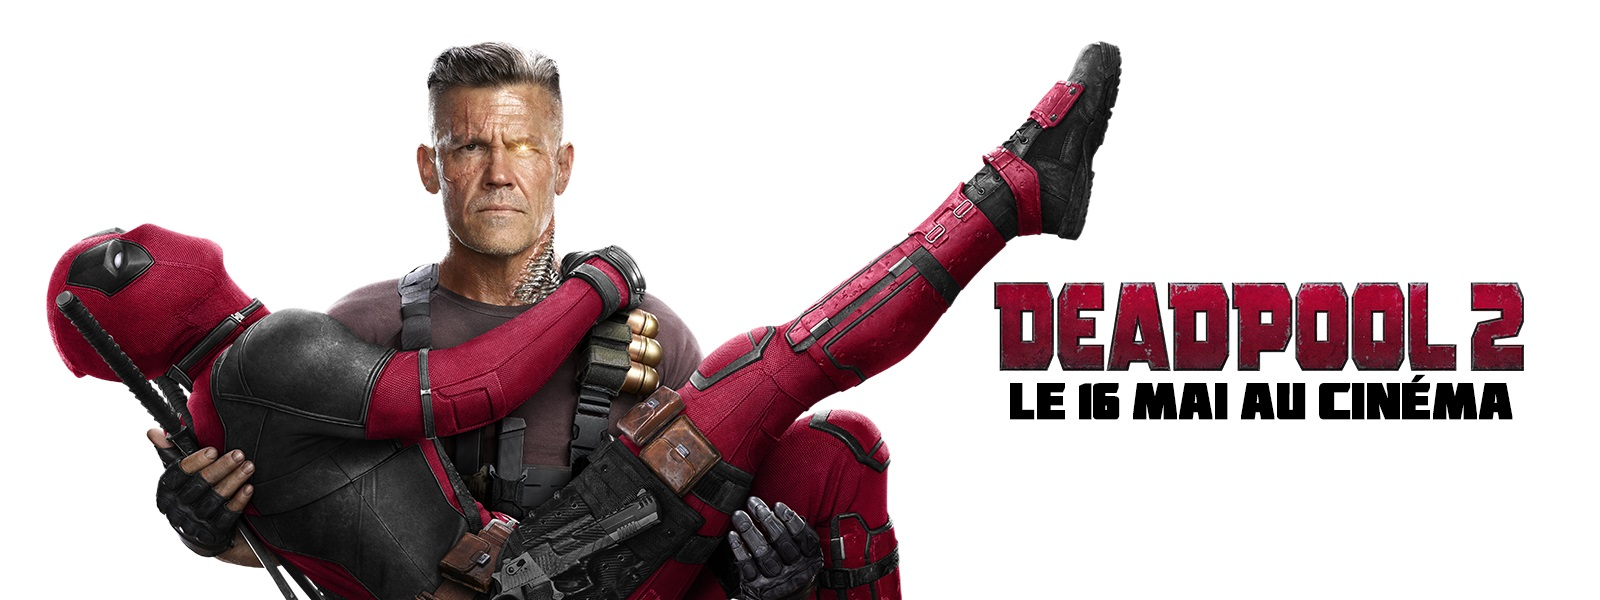 French banner for Deadpool 2 featuring the Merc and Cable